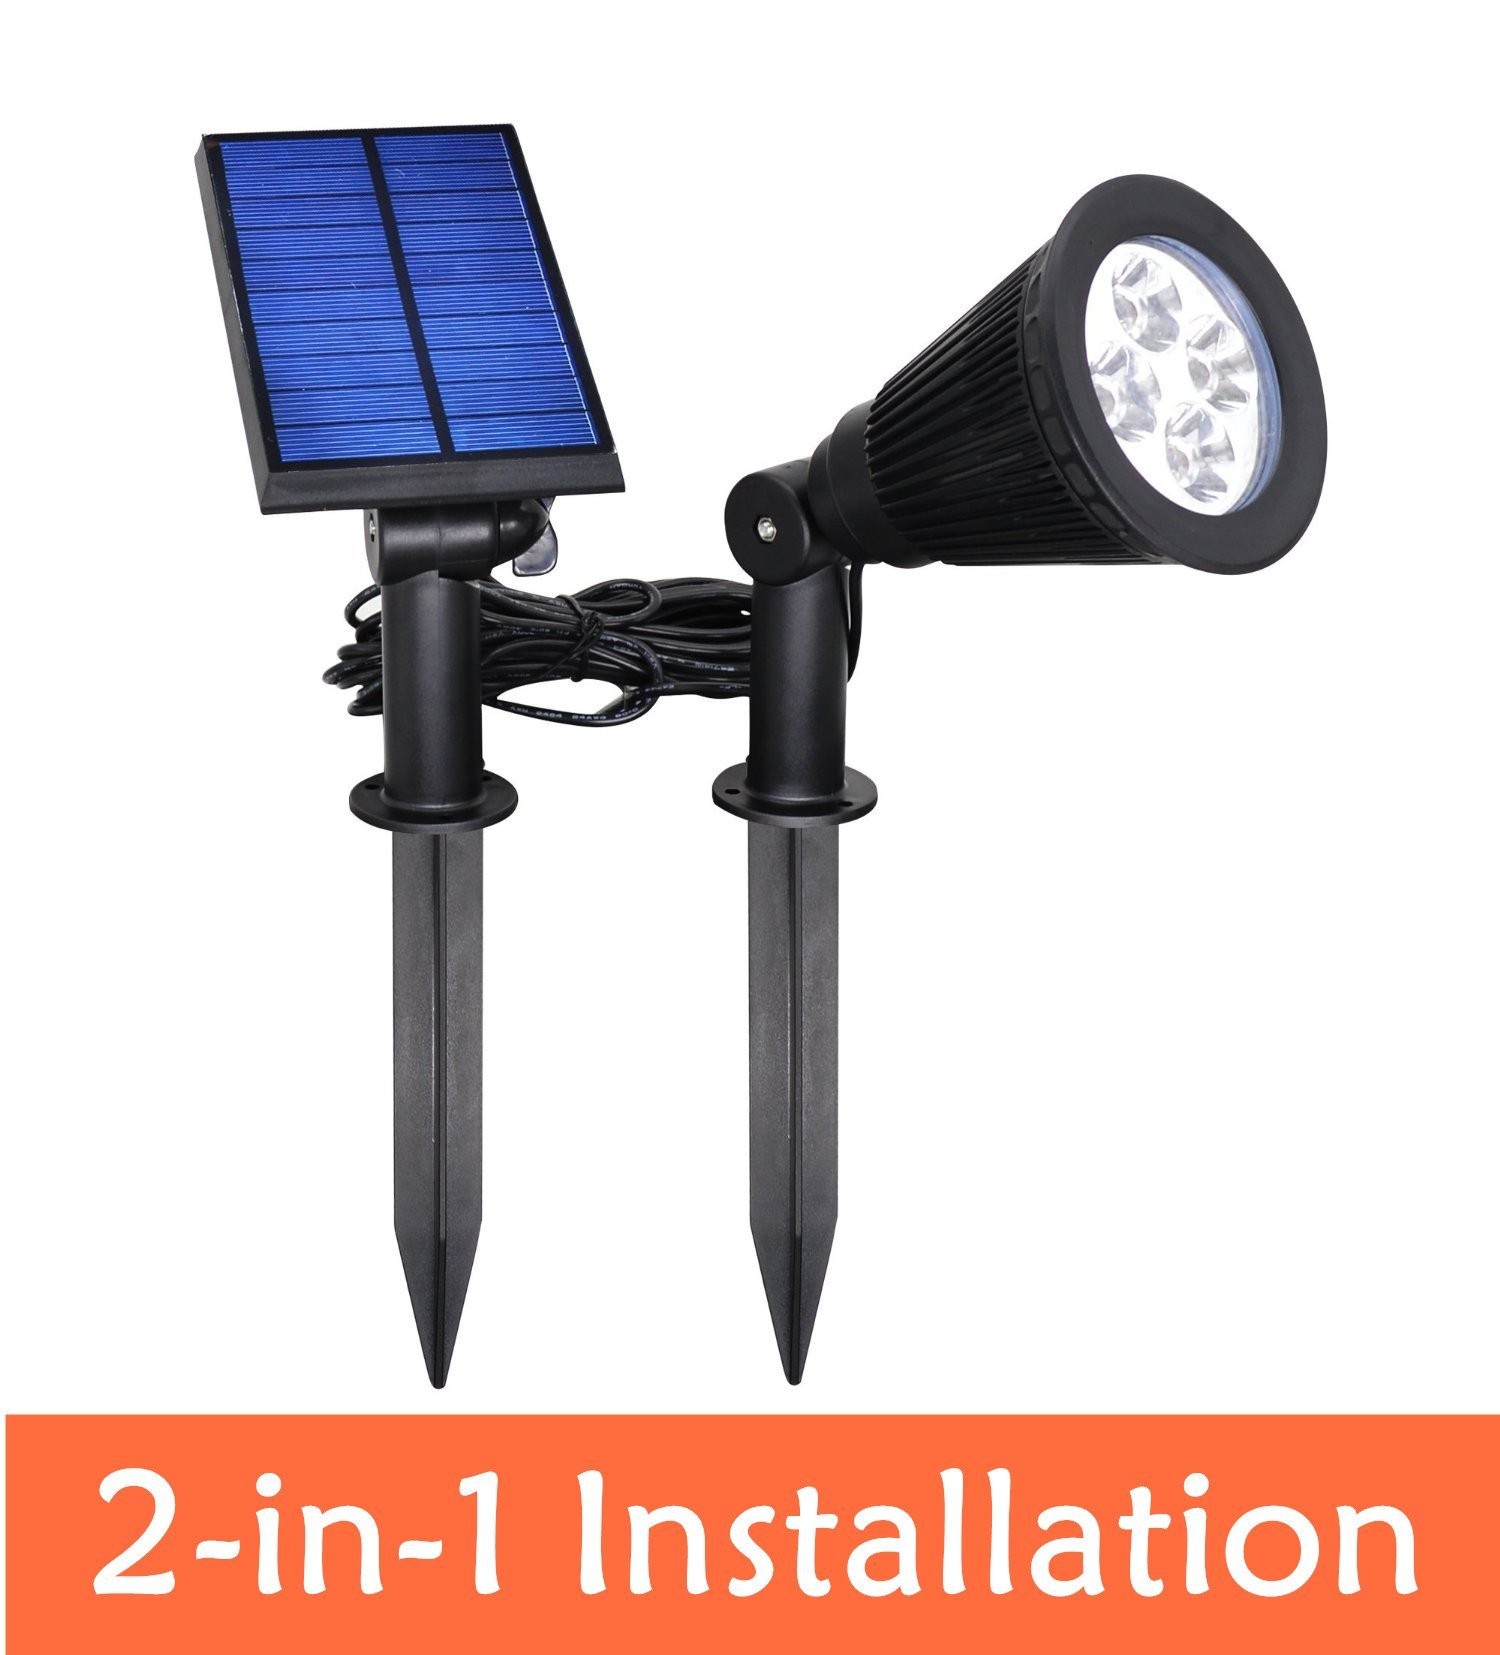 YINGHAO [New Upgraded Version] Solar Outdoor Indoor Spot Light 2 in 1 Installation IP44 Waterproof Separated Panel and Light, Outdoor Landscape Lighting Waterproof Solar Wall Light Security Lights by YINGHAO